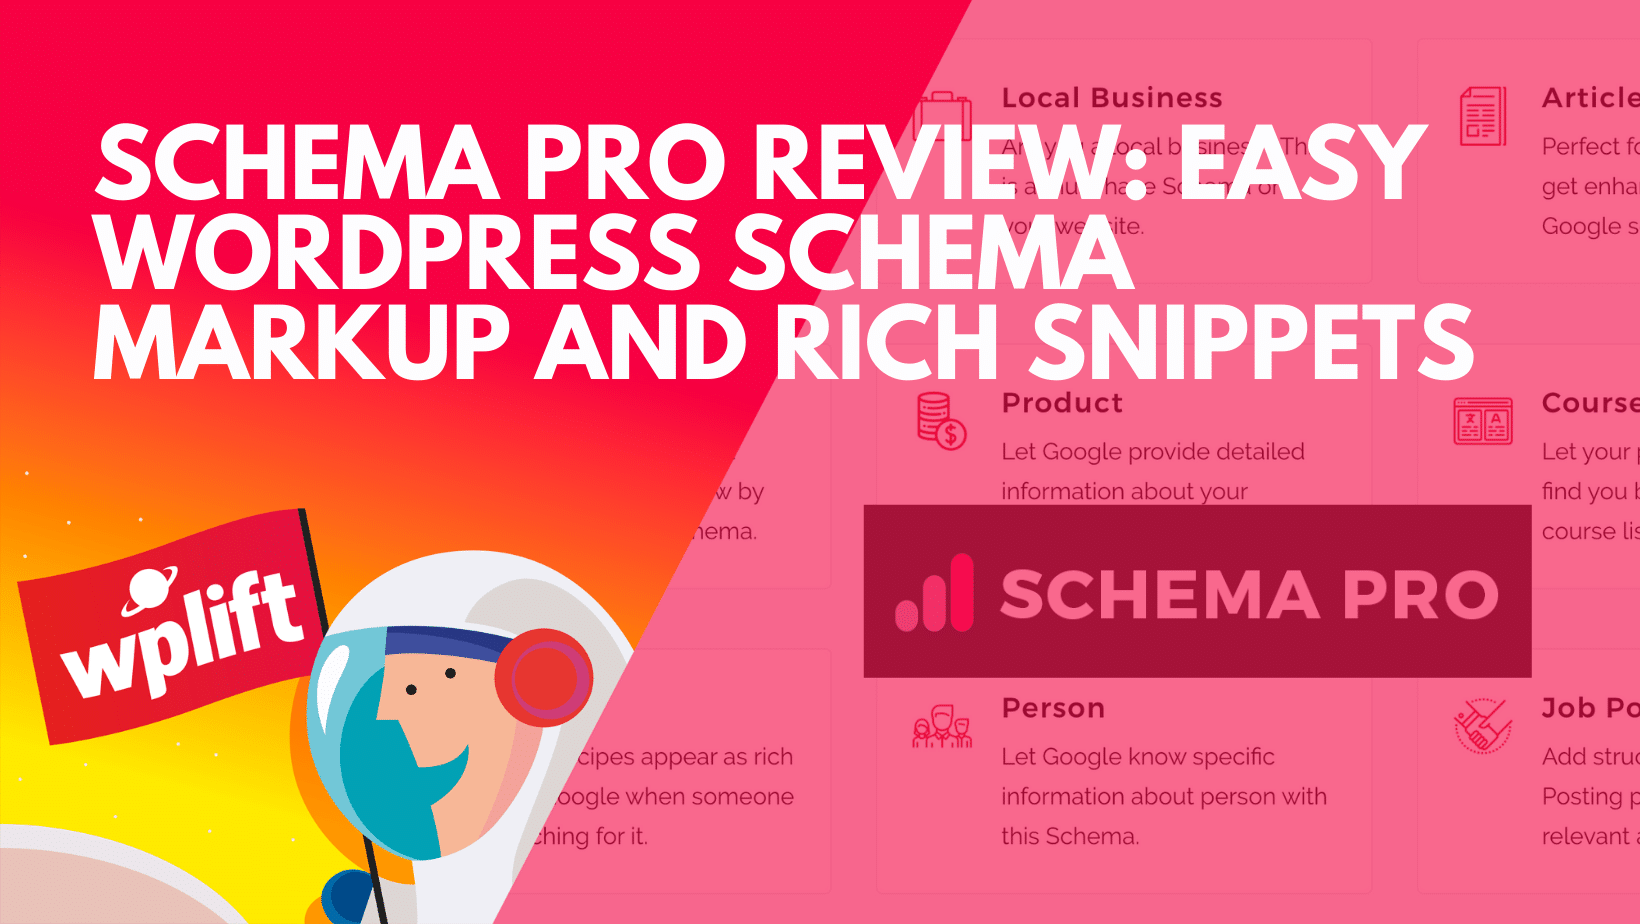 Schema Pro Review: Easy WordPress Schema Markup and Rich Snippets